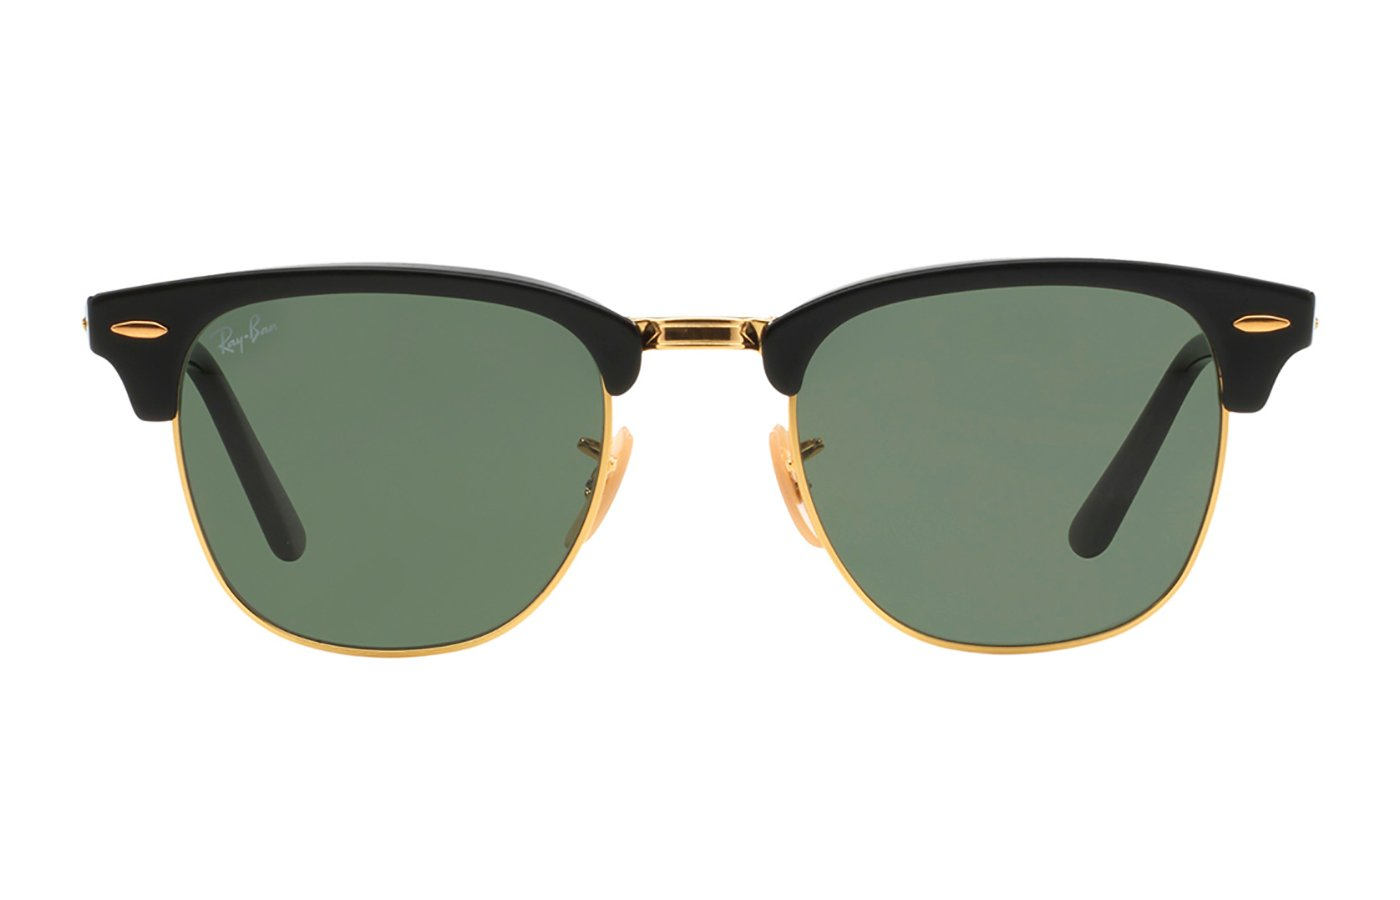 RAY-BAN CLUBMASTER FOLDING 0RB2176 51 901 BLACK